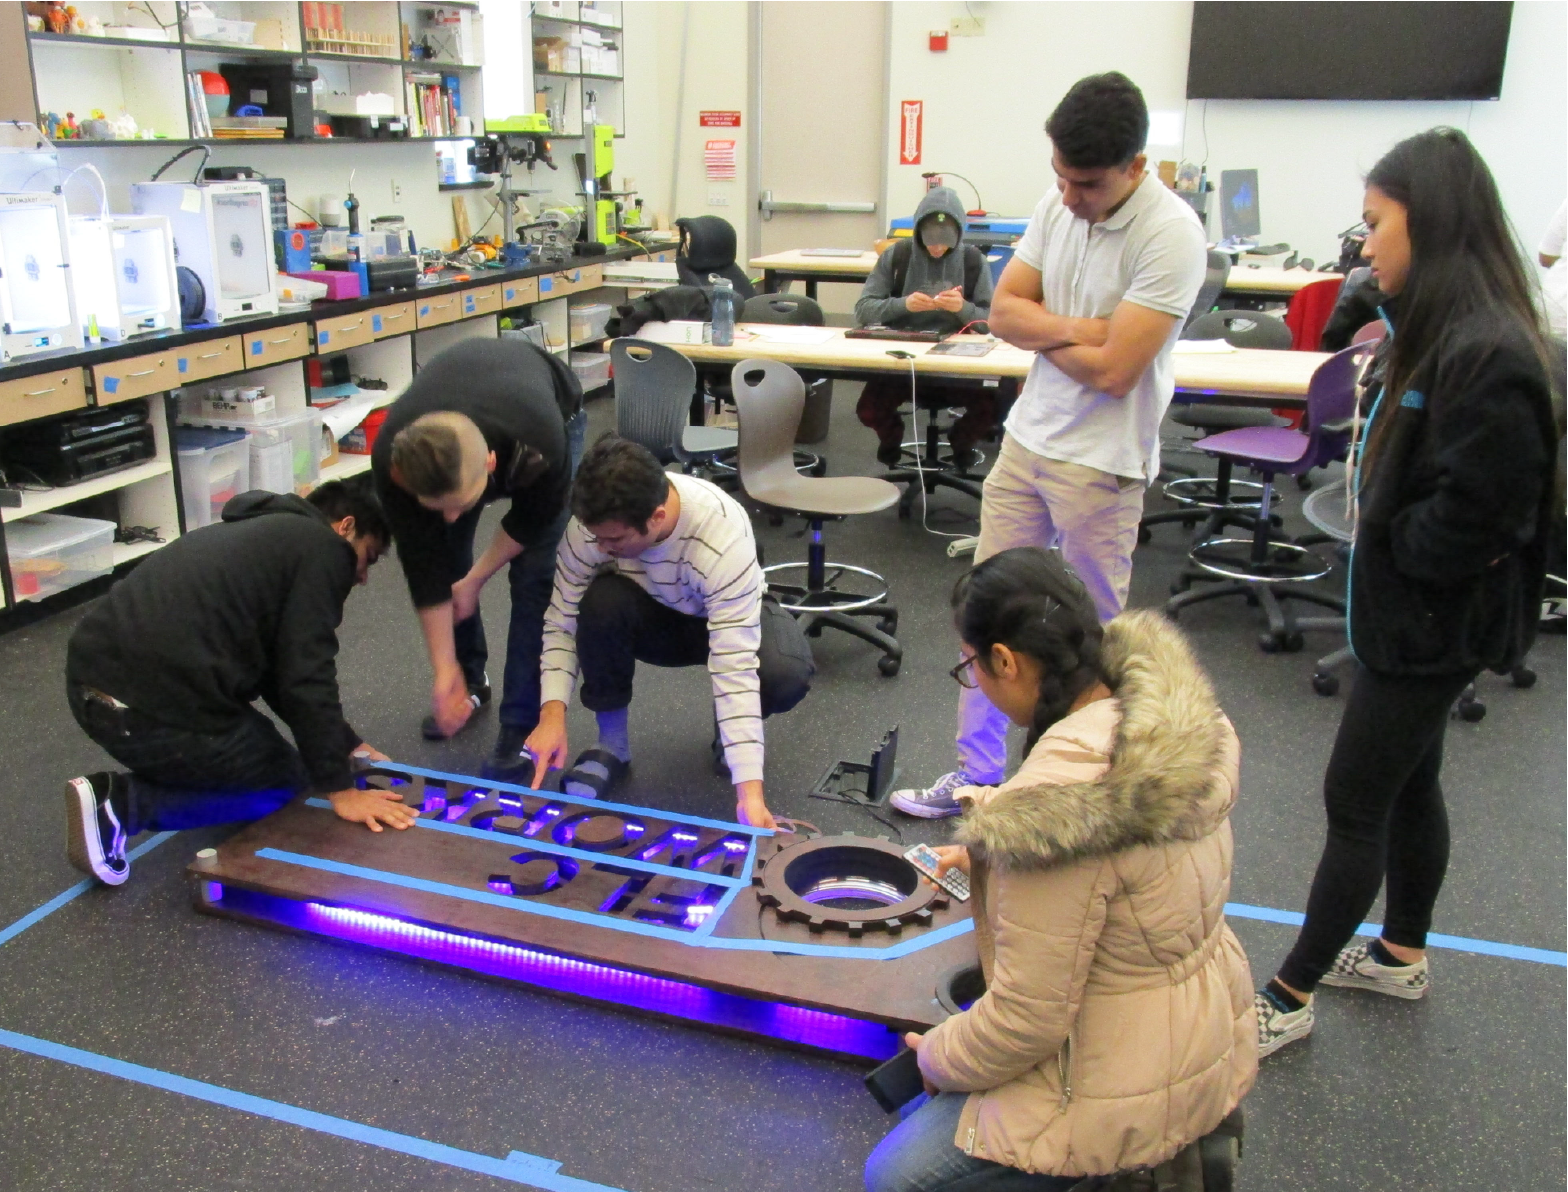 Makerspace Internships - Makerspace Internships are a way for FLC students to use and continue developing skills learned in the Folsom Lake College Innovation Center.